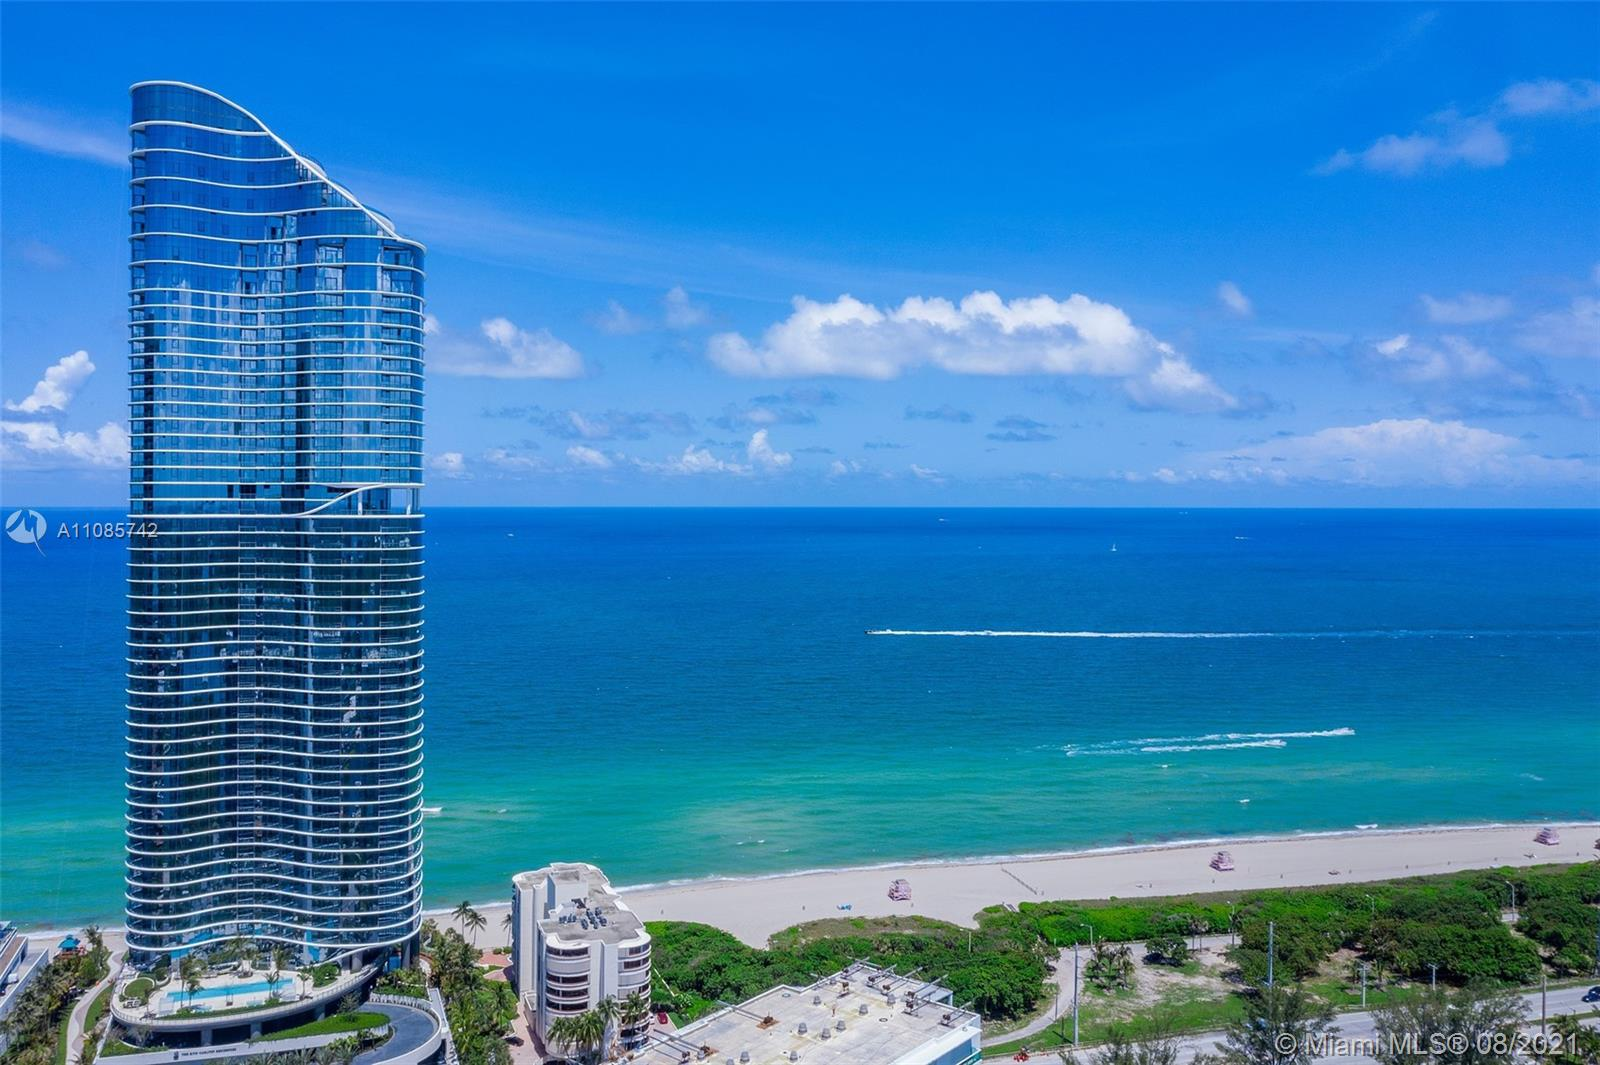 Ritz Carlton...4Bdrm /5.5 Bth where design and excellence meet, nearly 10ft of glass separate you from infinite panoramic views that make you feel you are floating in the sky. Expansive views from every bedroom. No detail spared, with finest Italian finishes, Snaidero kitchen & Gaggenau appliances. This is Ritz Carlton at its best, with unparalleled services, and a club level on the 33rd floor that you will never want to leave from... come and see!!!